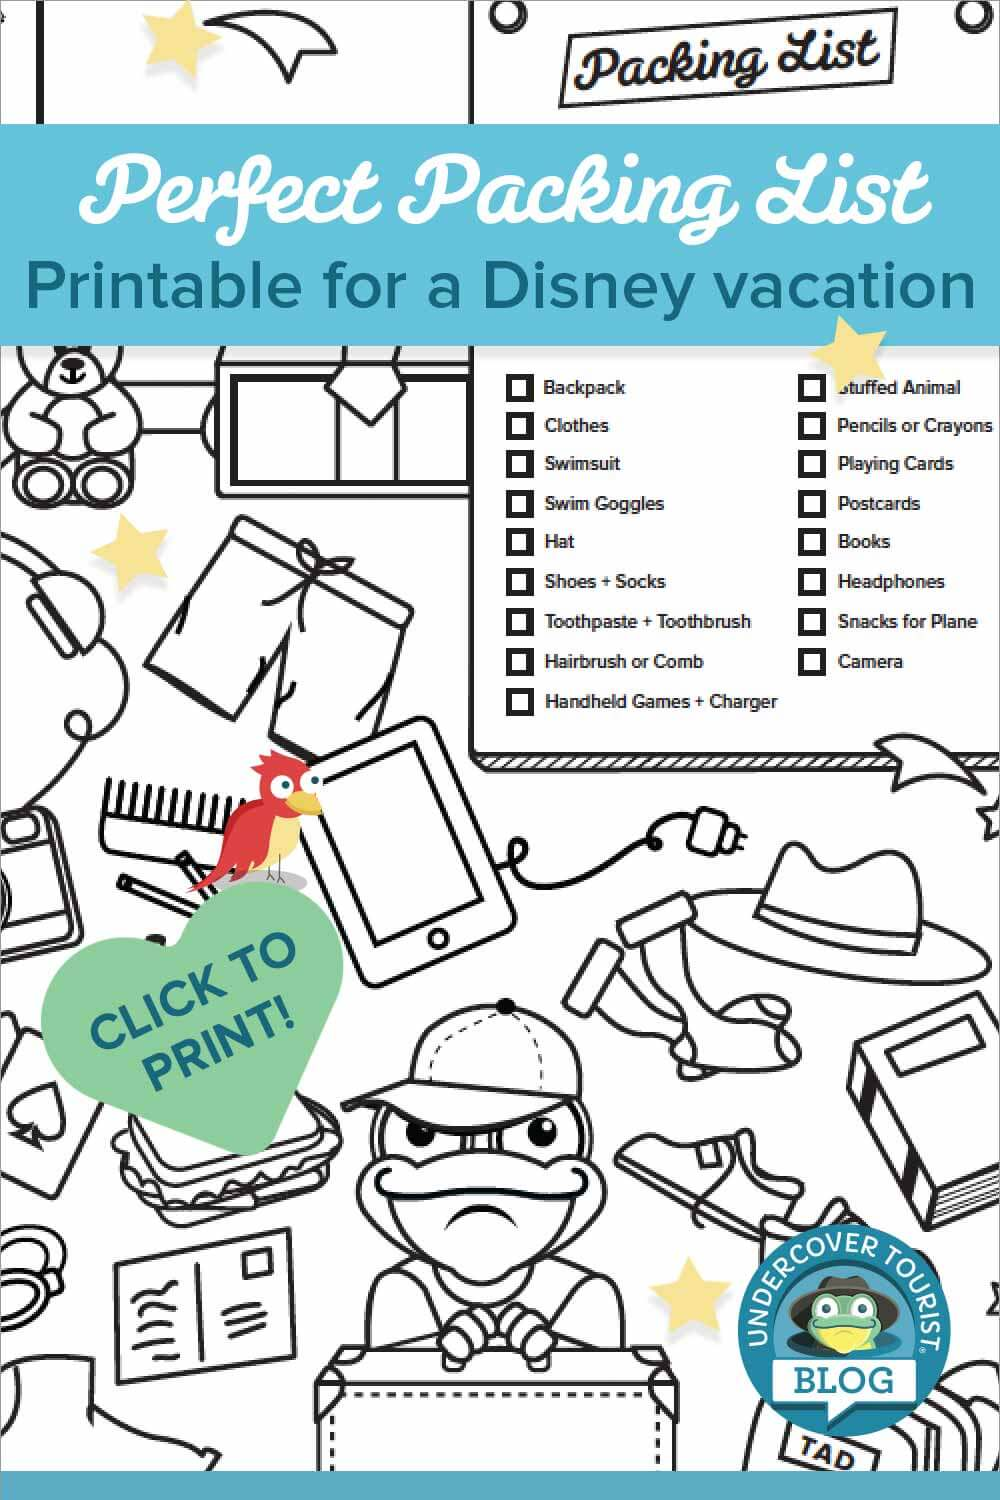 Disney Packing List Printable